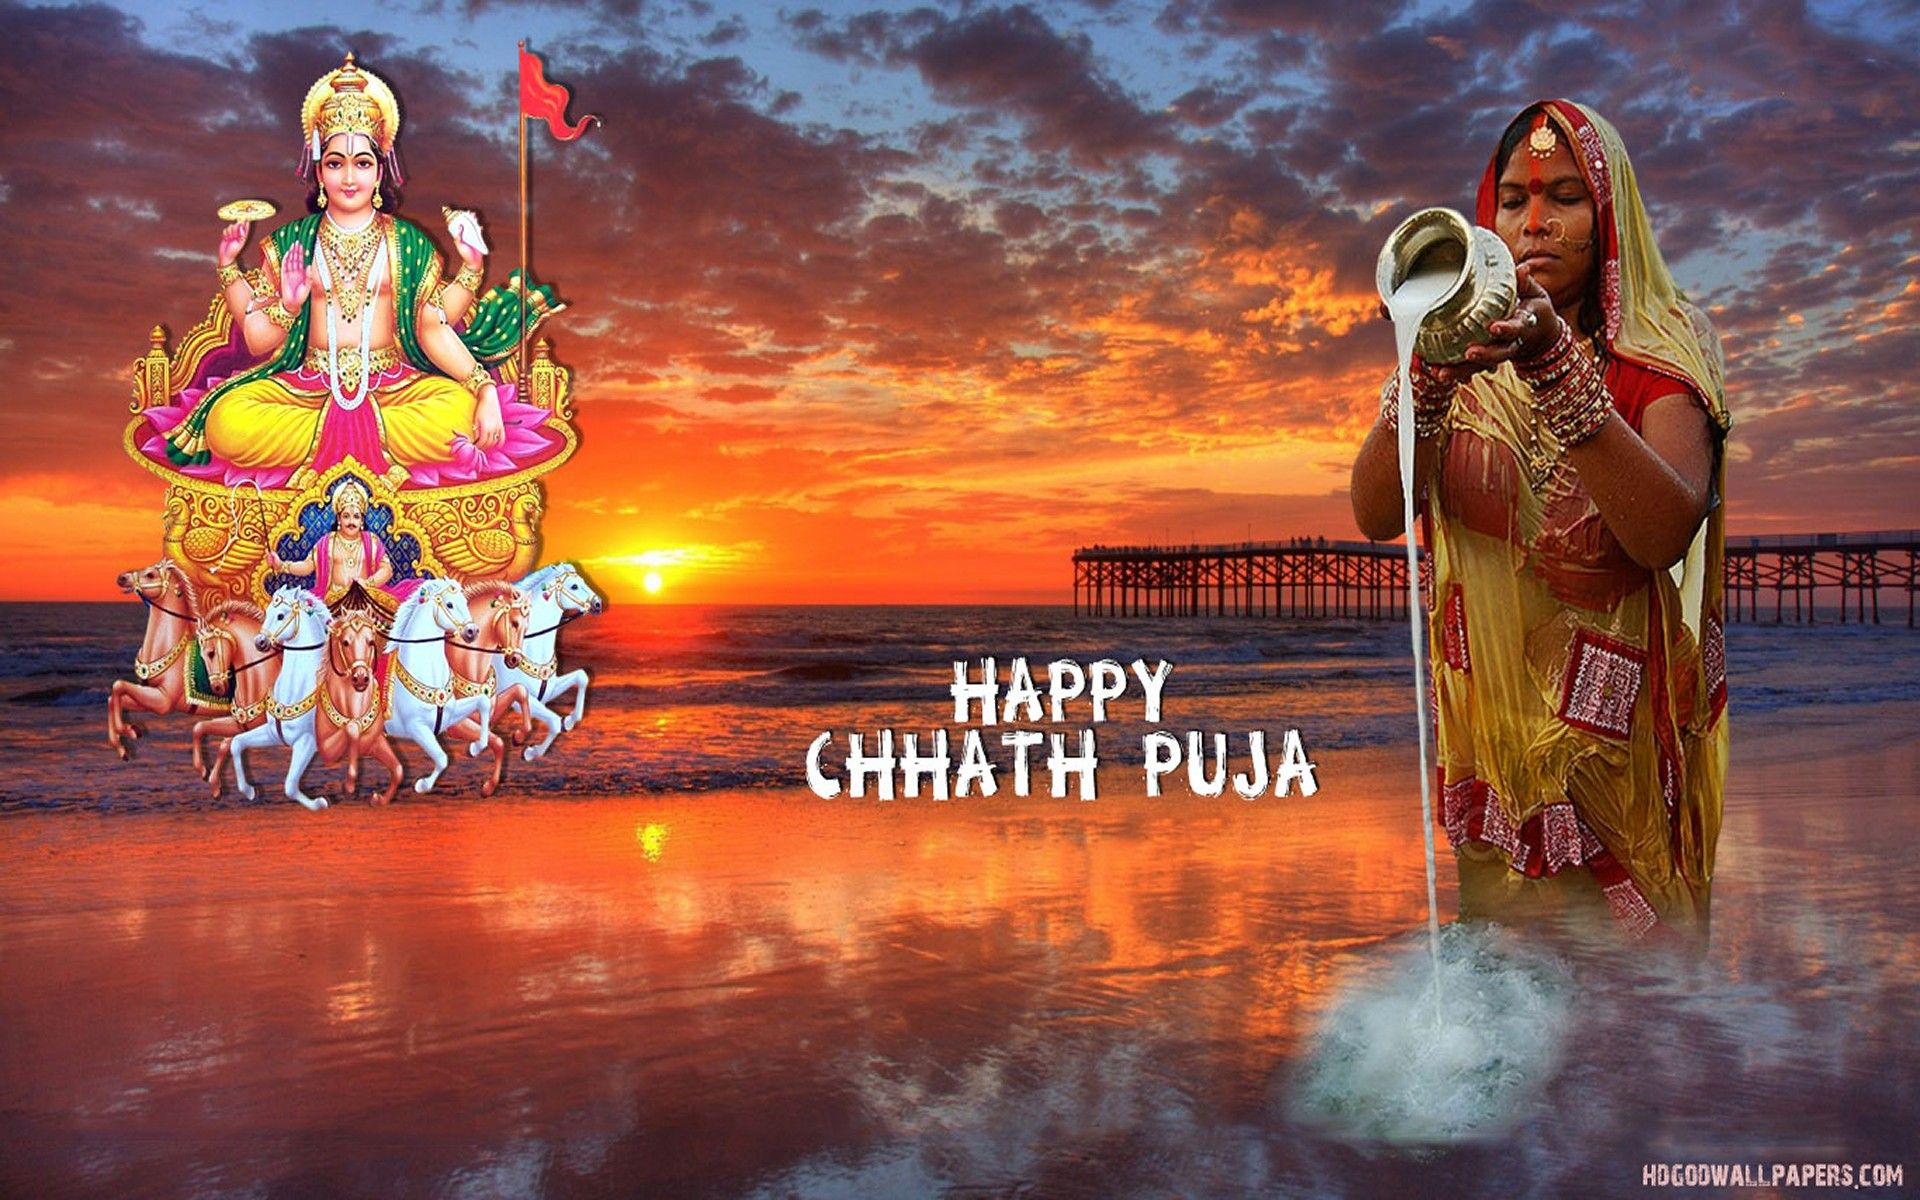 Chhath Puja Png